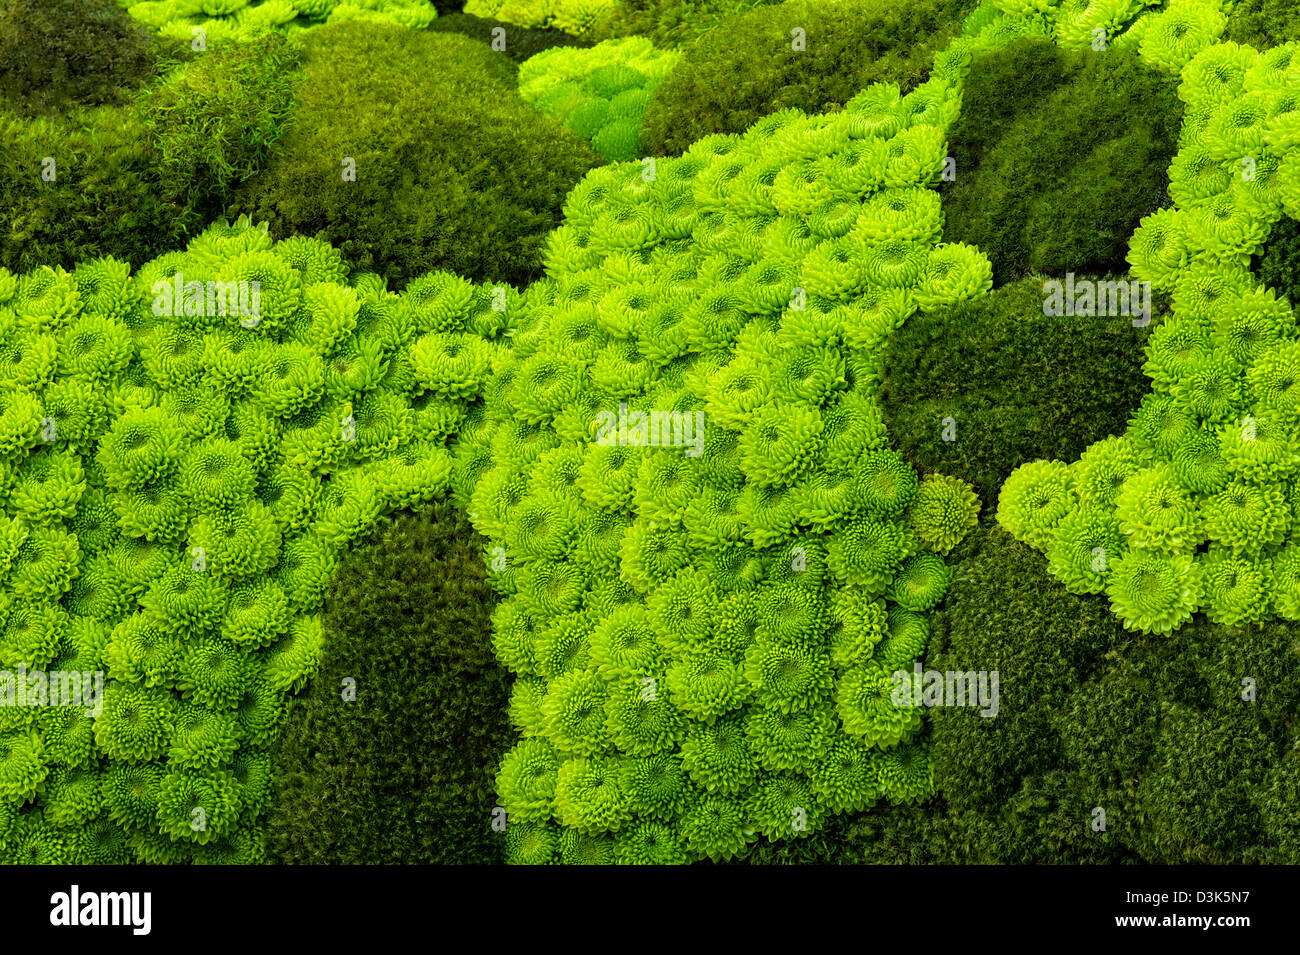 Mosses and rock garden succulents. - Stock Image